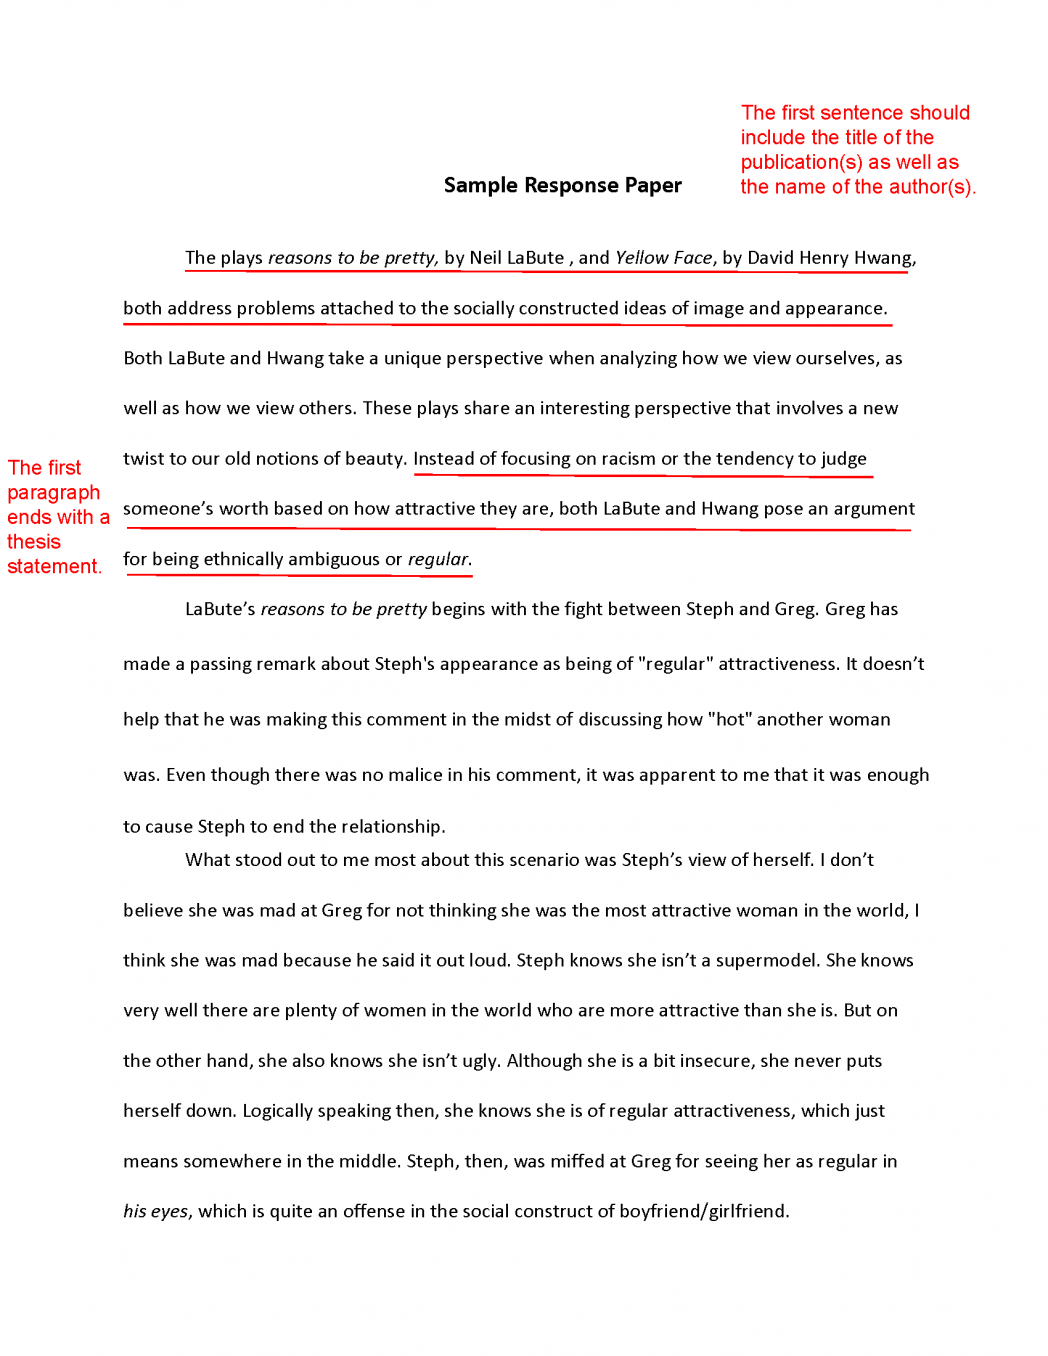 019 Informative Essay Thesis Topics For Synthesis Responces 1048x1356 Unusual Template How To Write An Statement Full